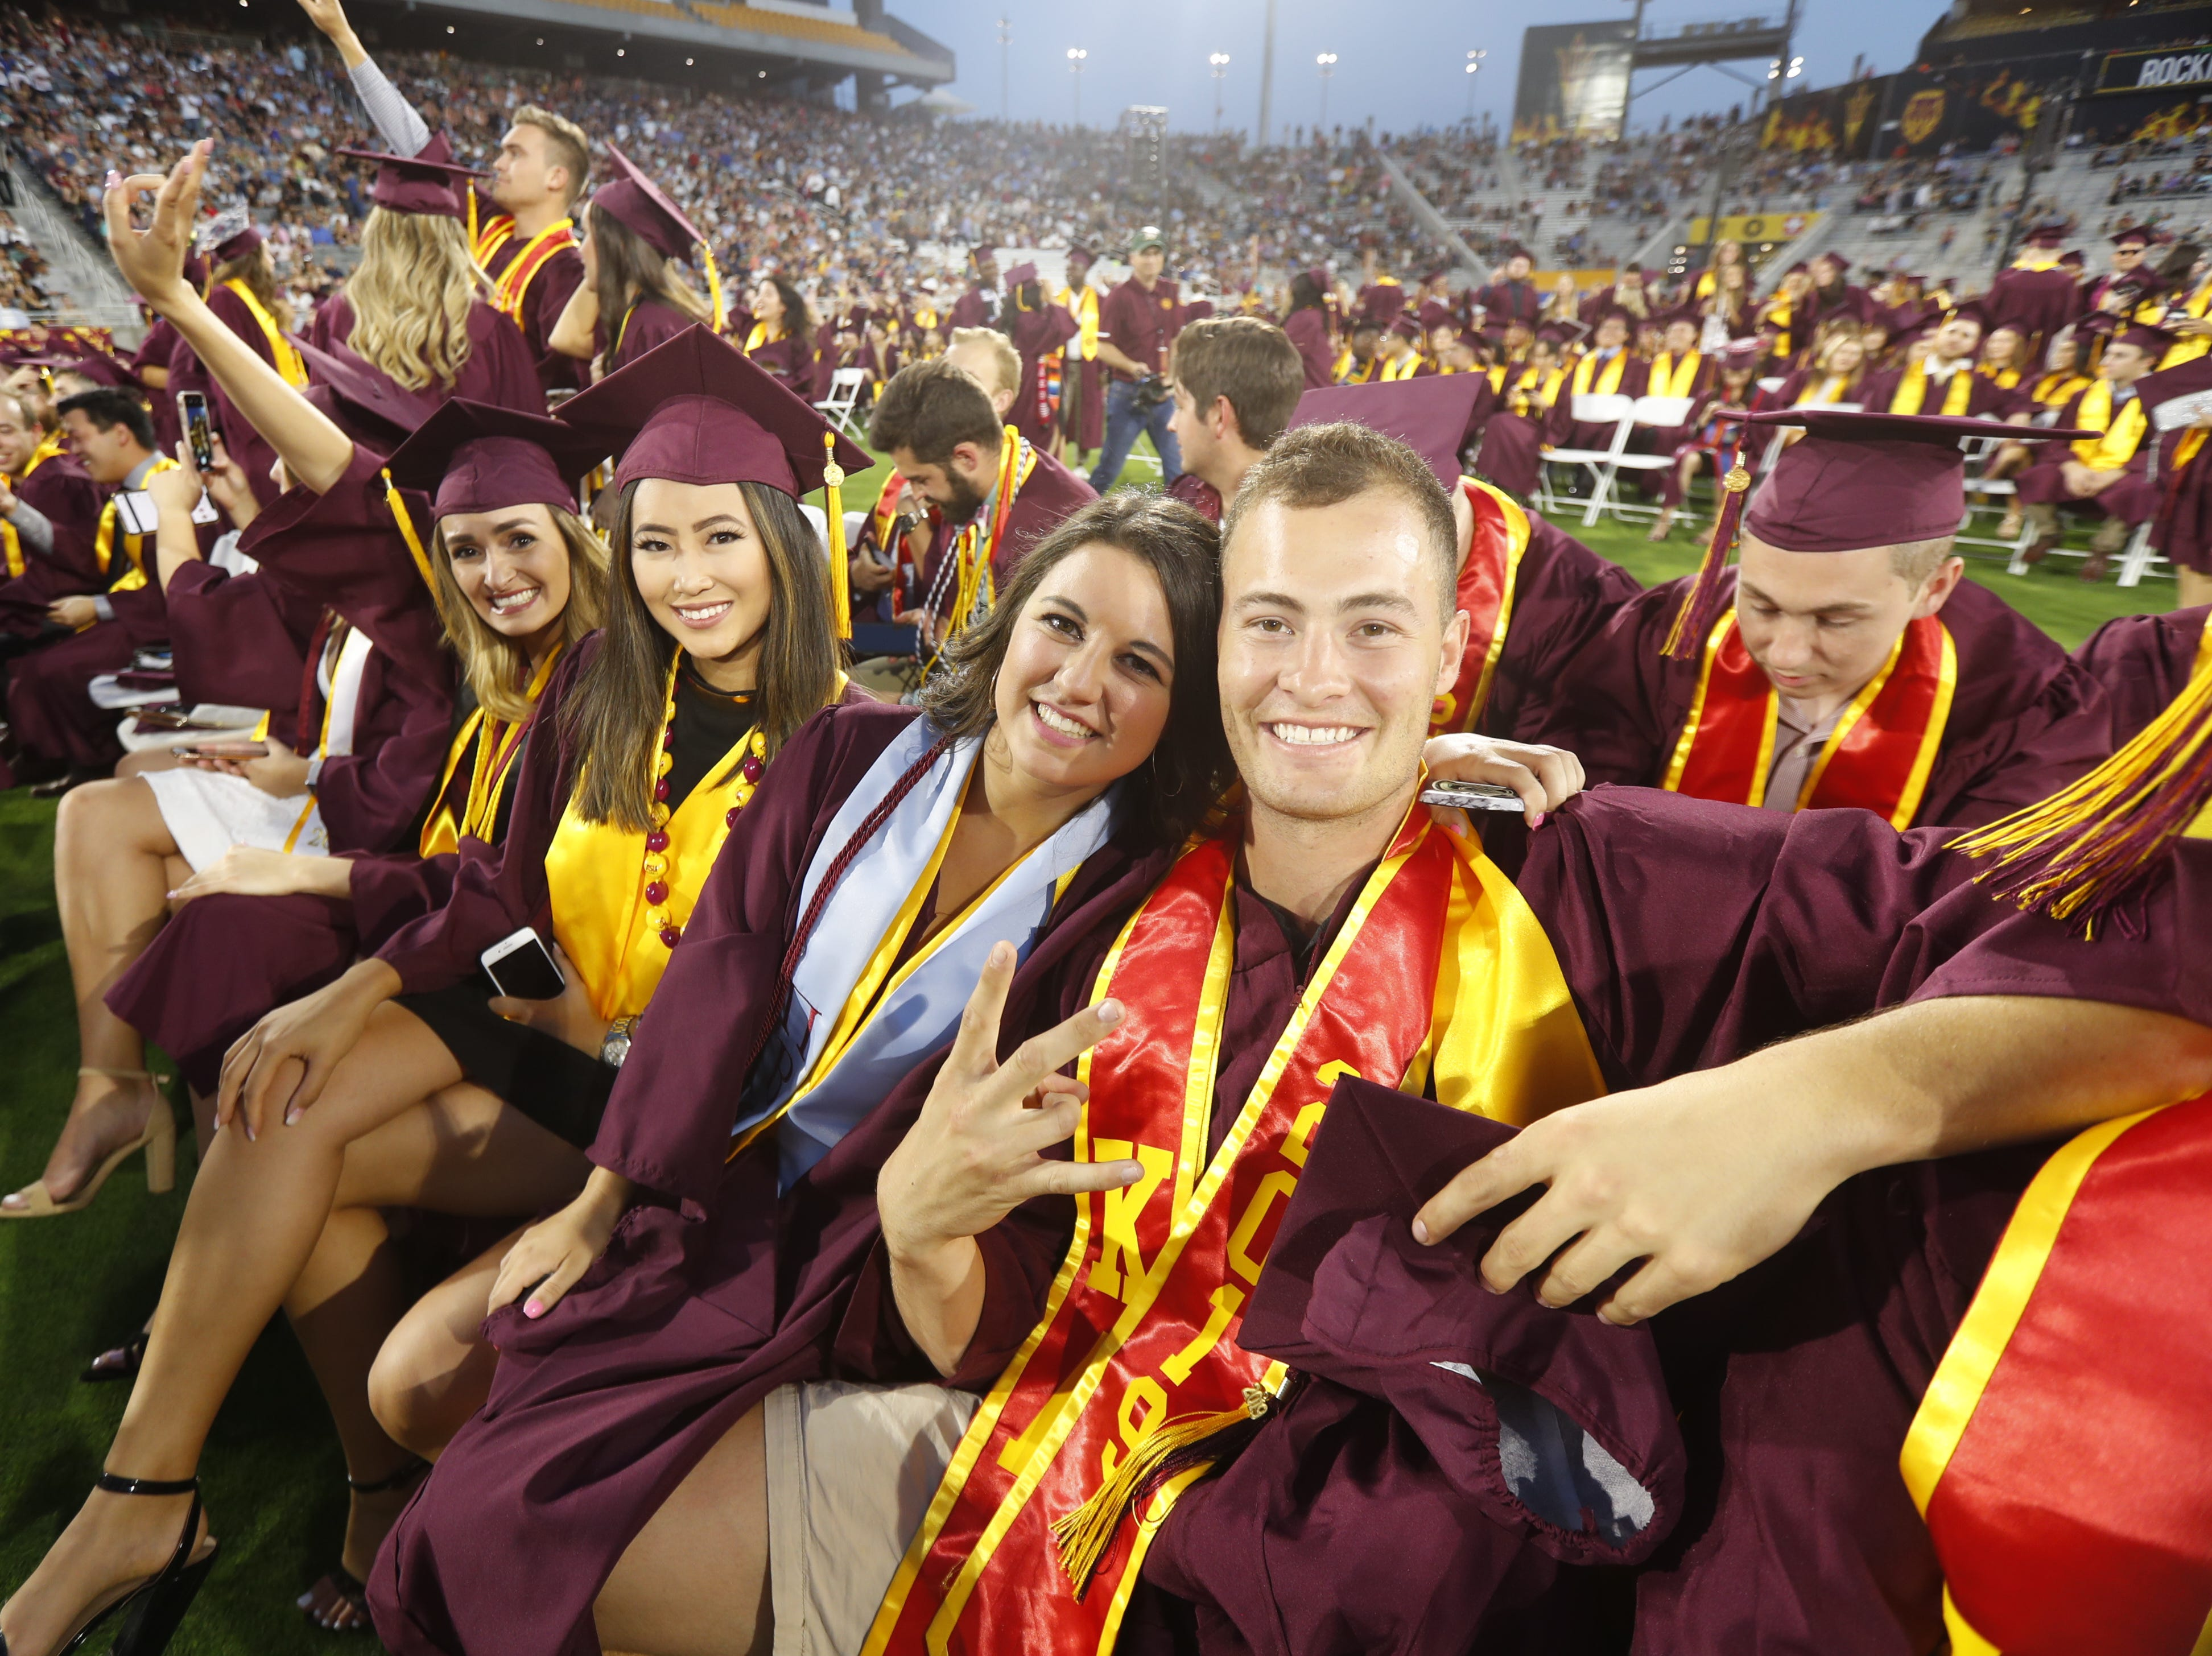 ASU graduates pose for picture during ASU's Undergraduate Commencement at Sun Devil Stadium in Tempe, Ariz. on May 6, 2019.